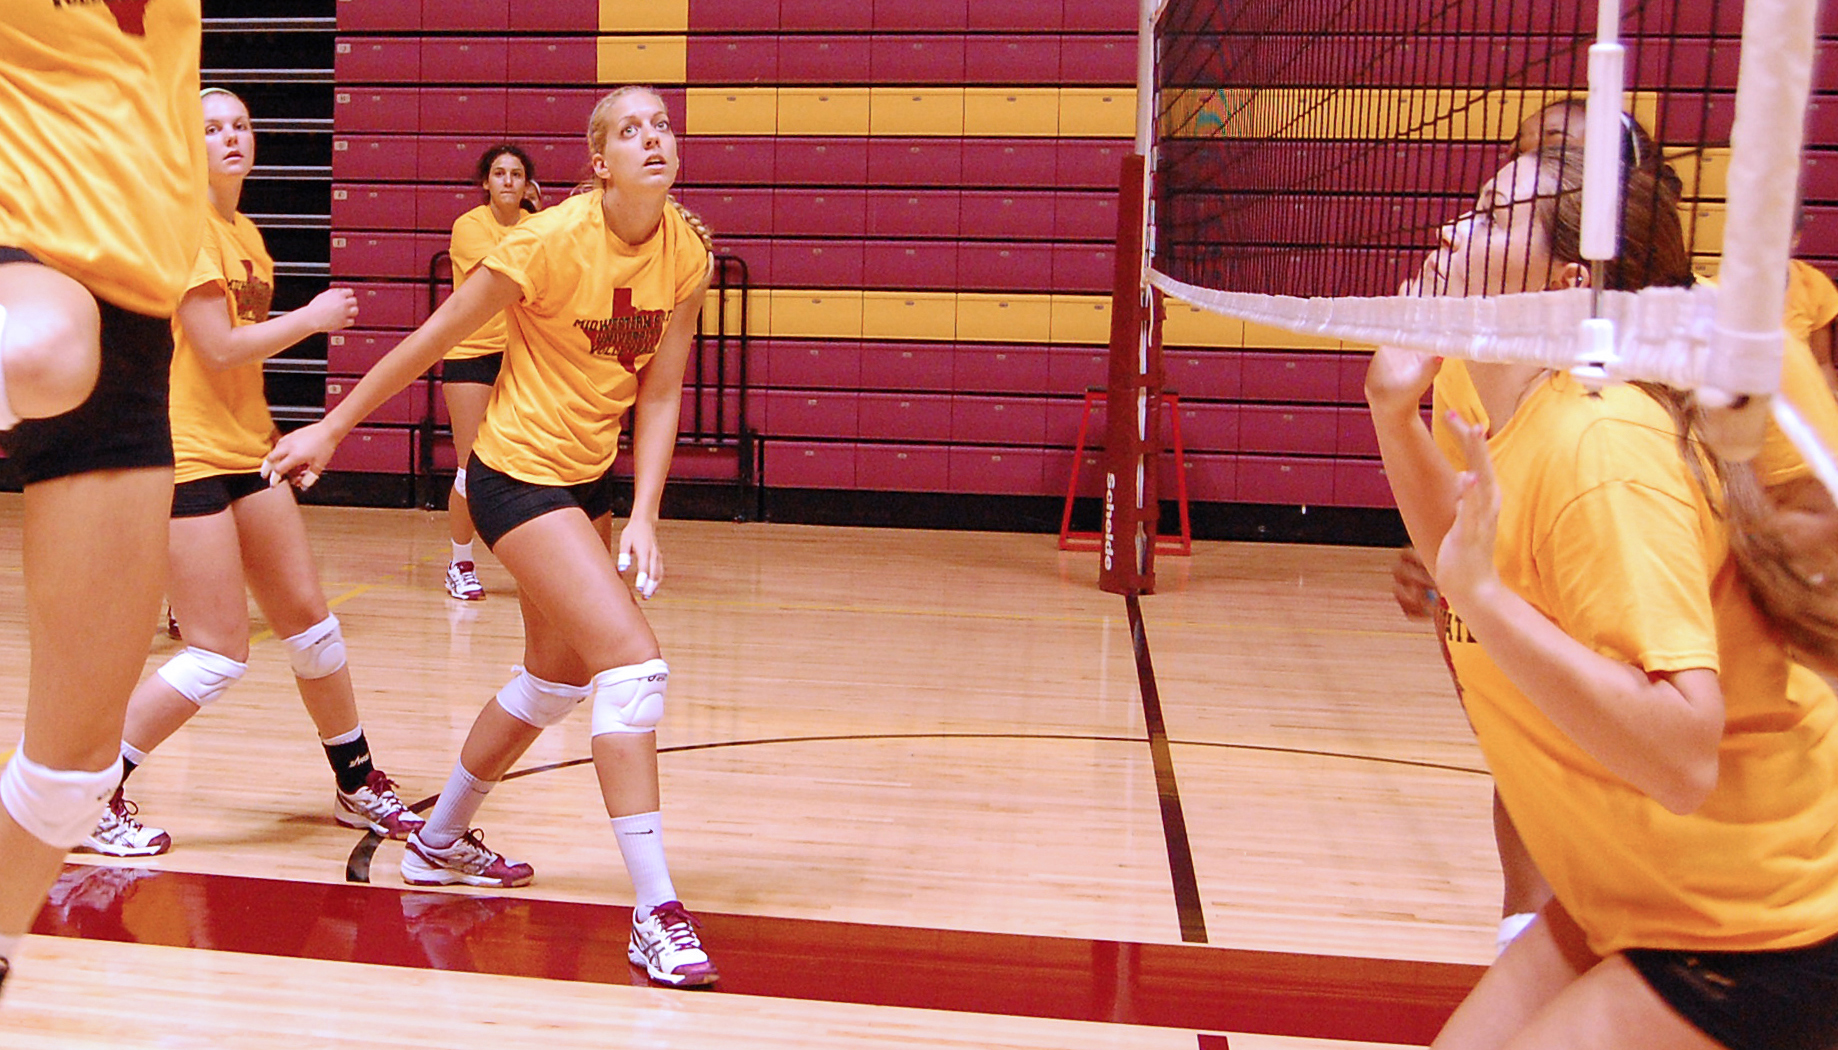 Chemistry crucial to volleyball team's improvement